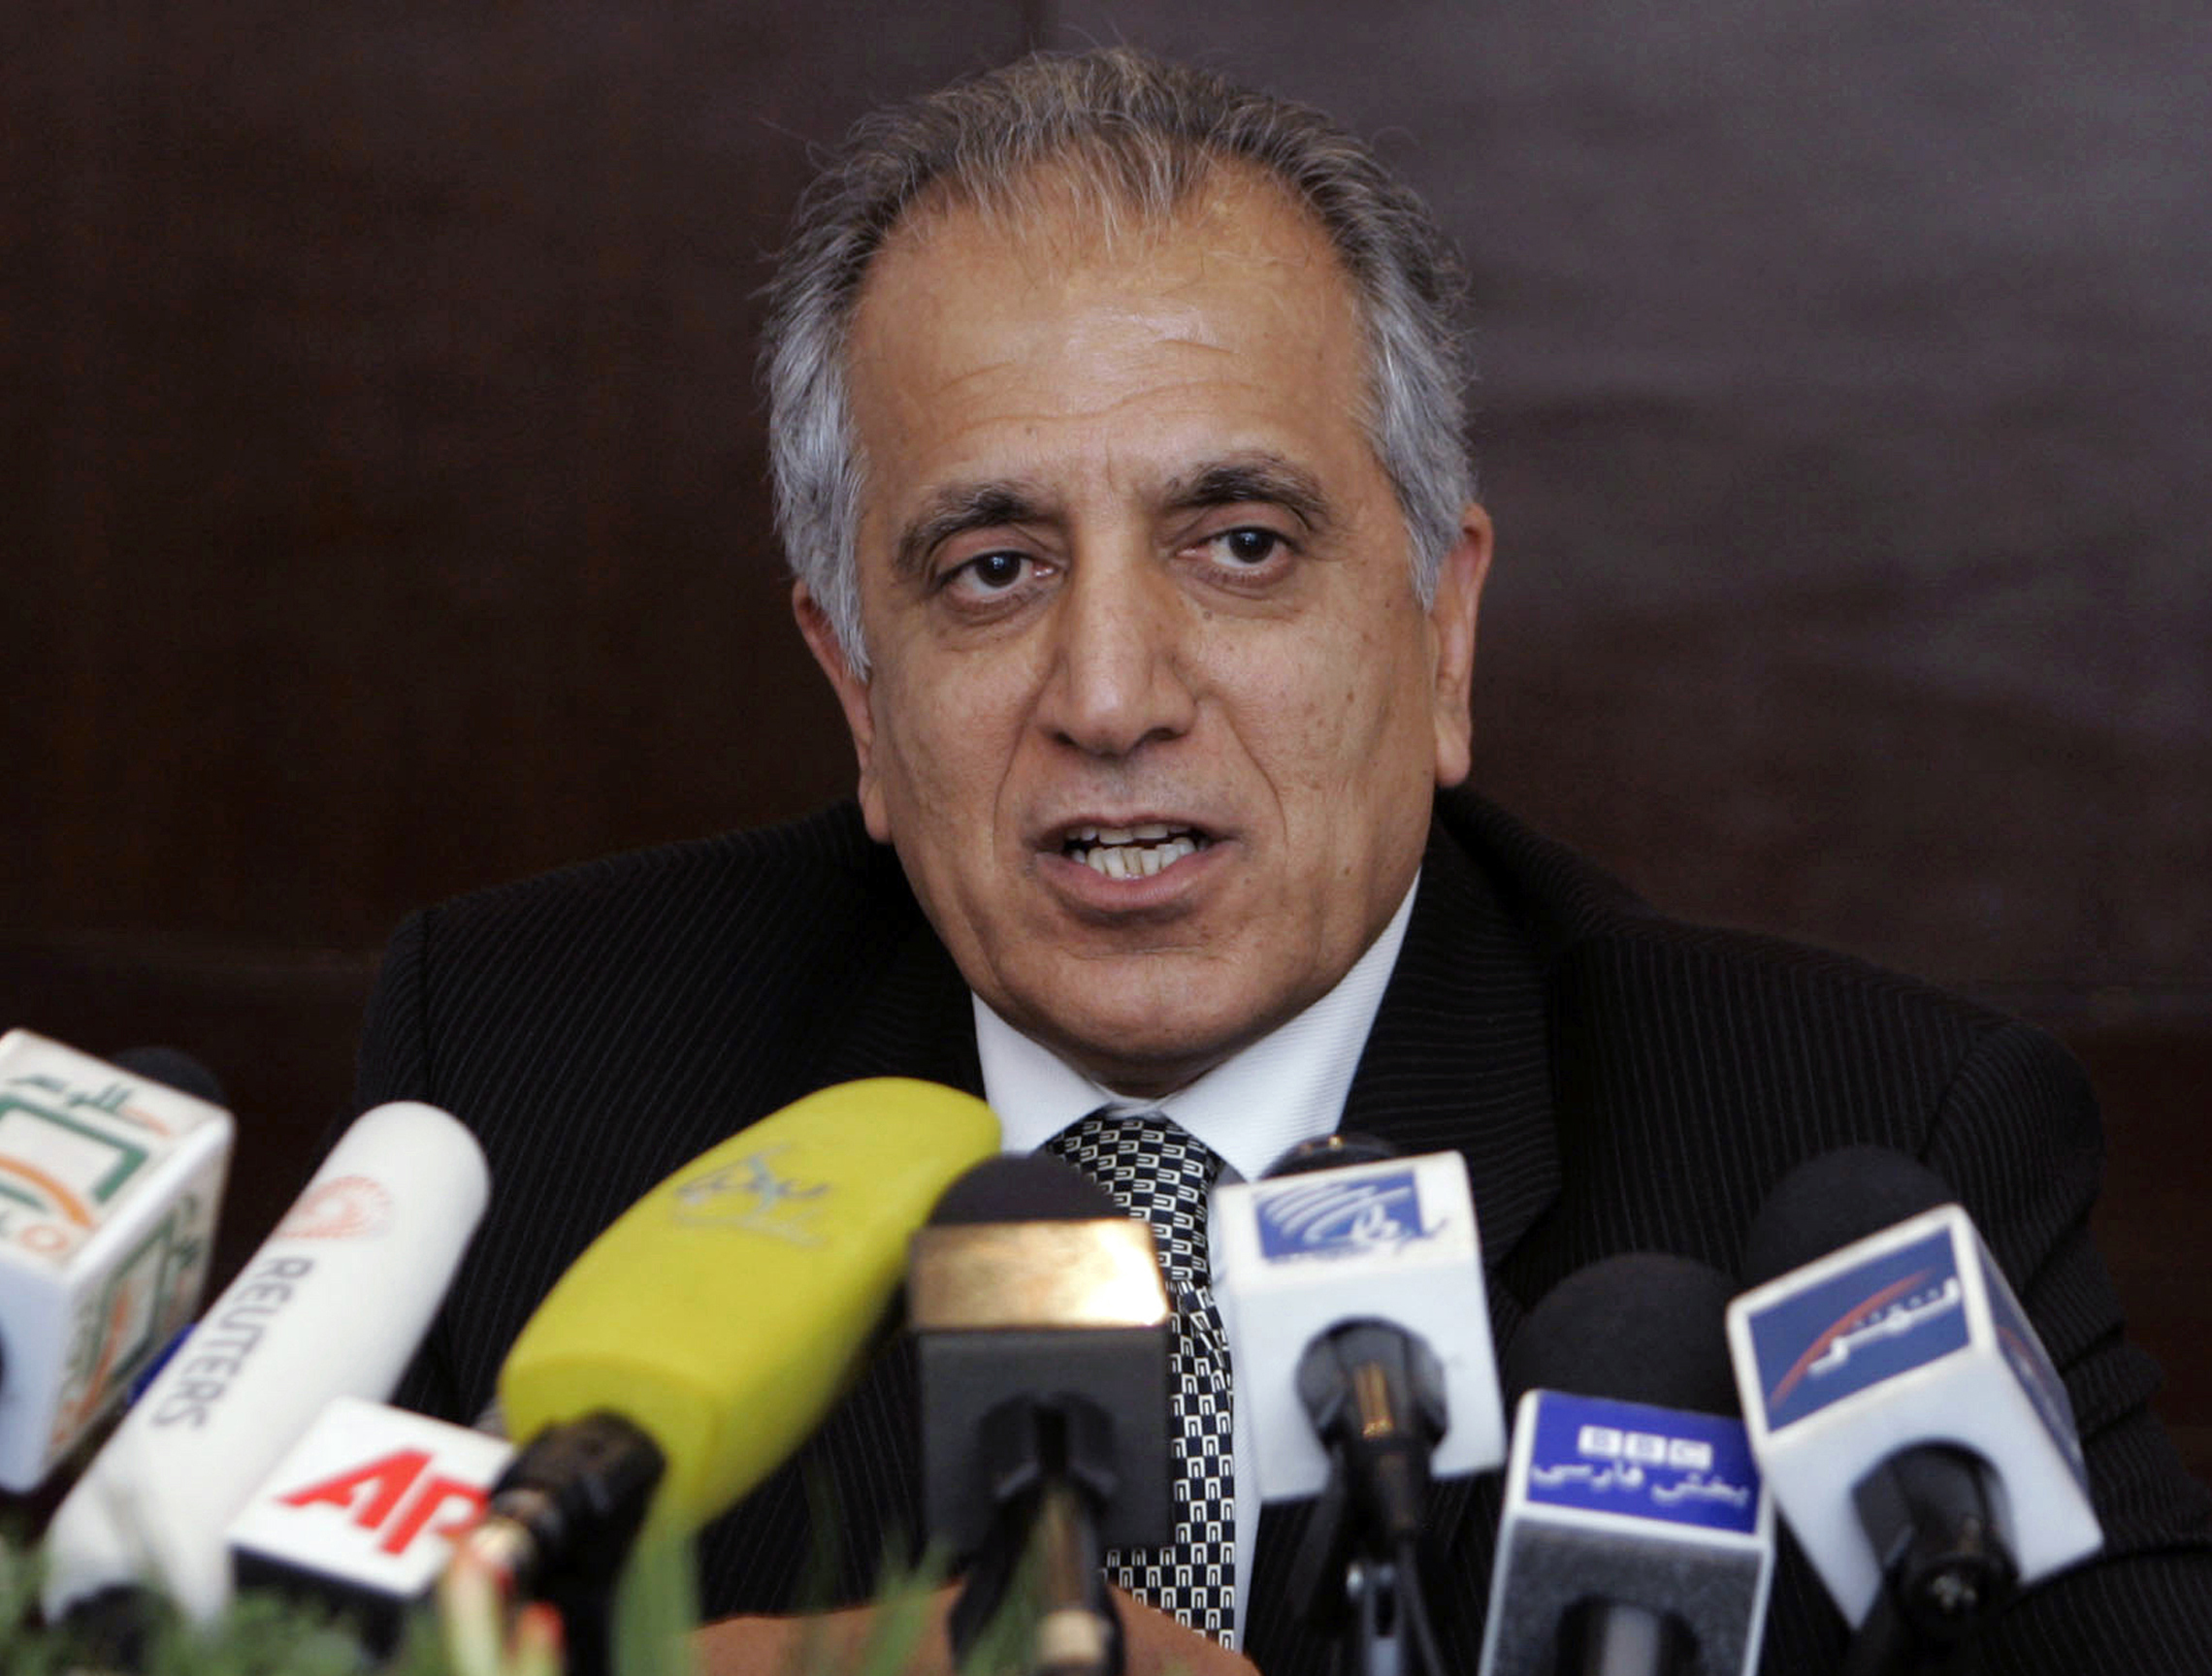 In this March 13, 2009, file photo, Zalmay Khalilzad, special adviser on reconciliation, speaks during a news conference in Kabul. Khalilzad said on Saturday that